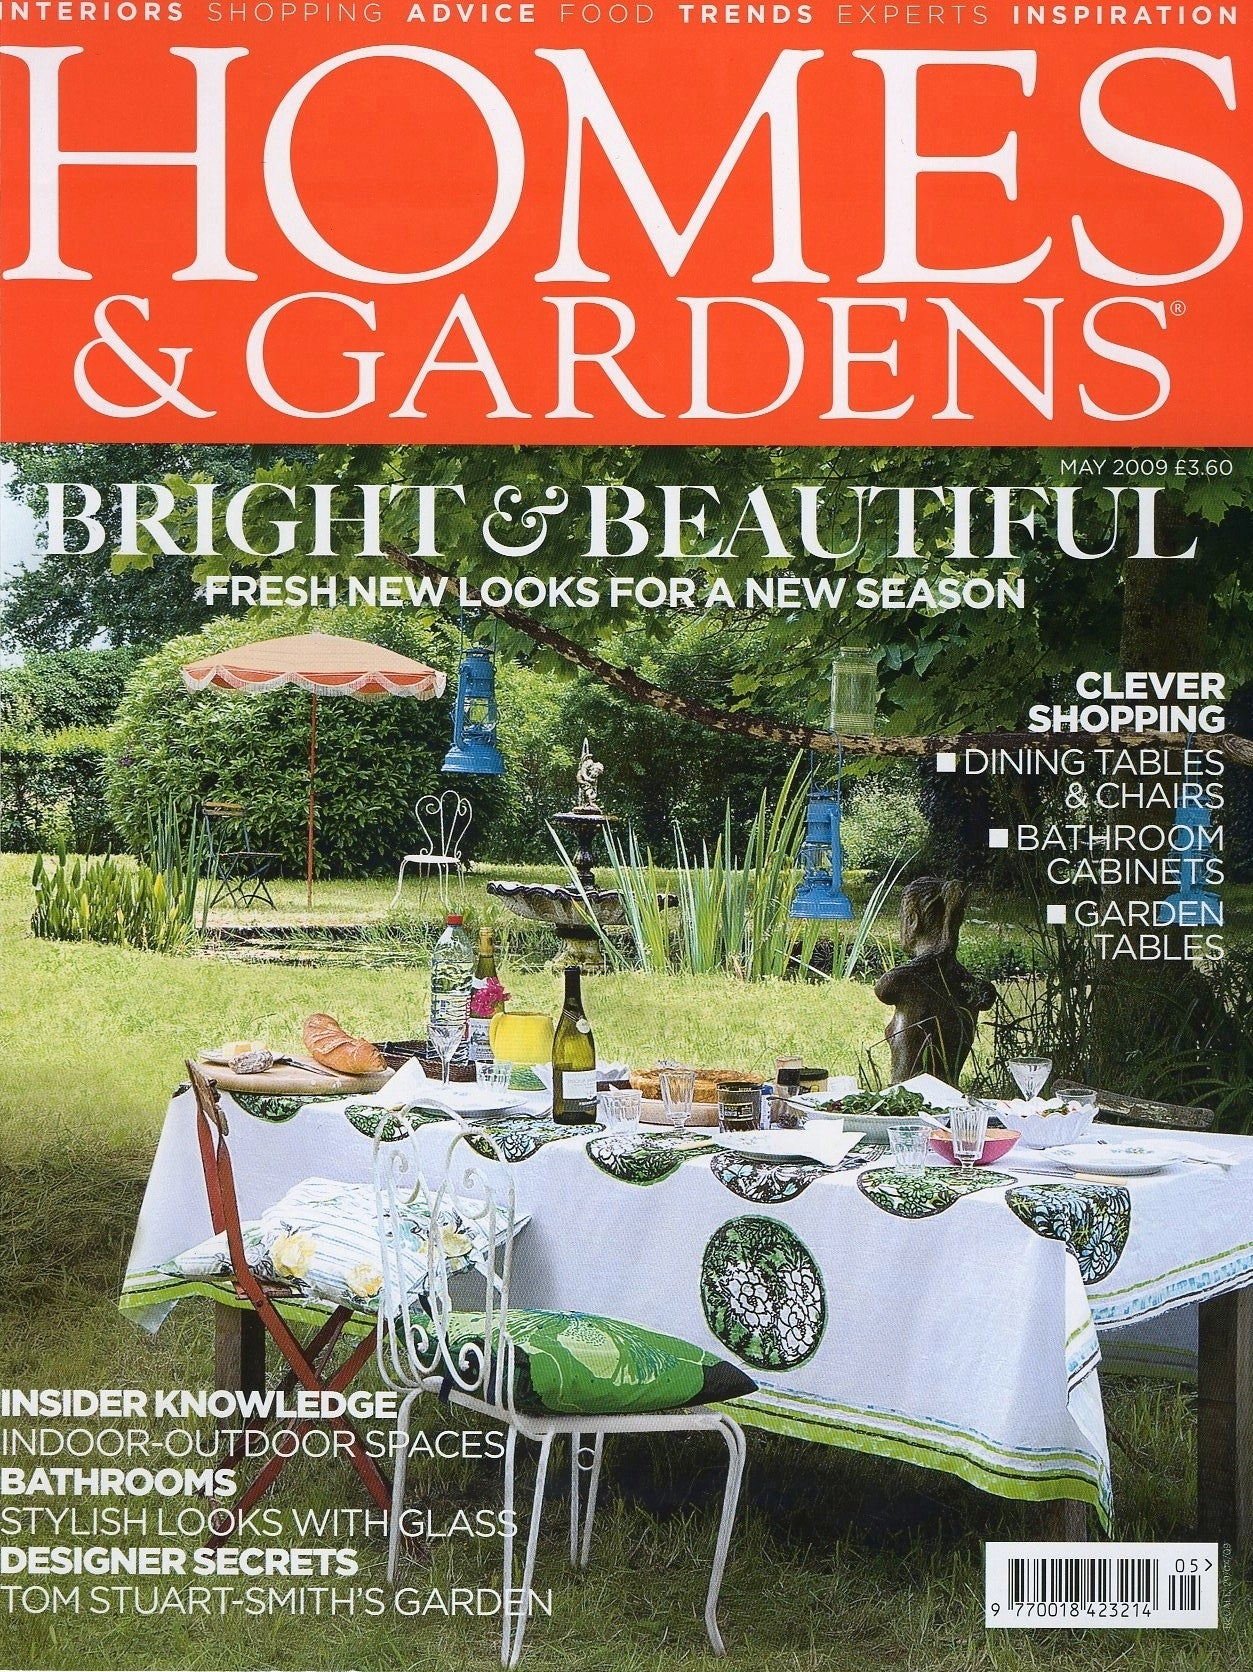 MagScapes - Homes & Gardens